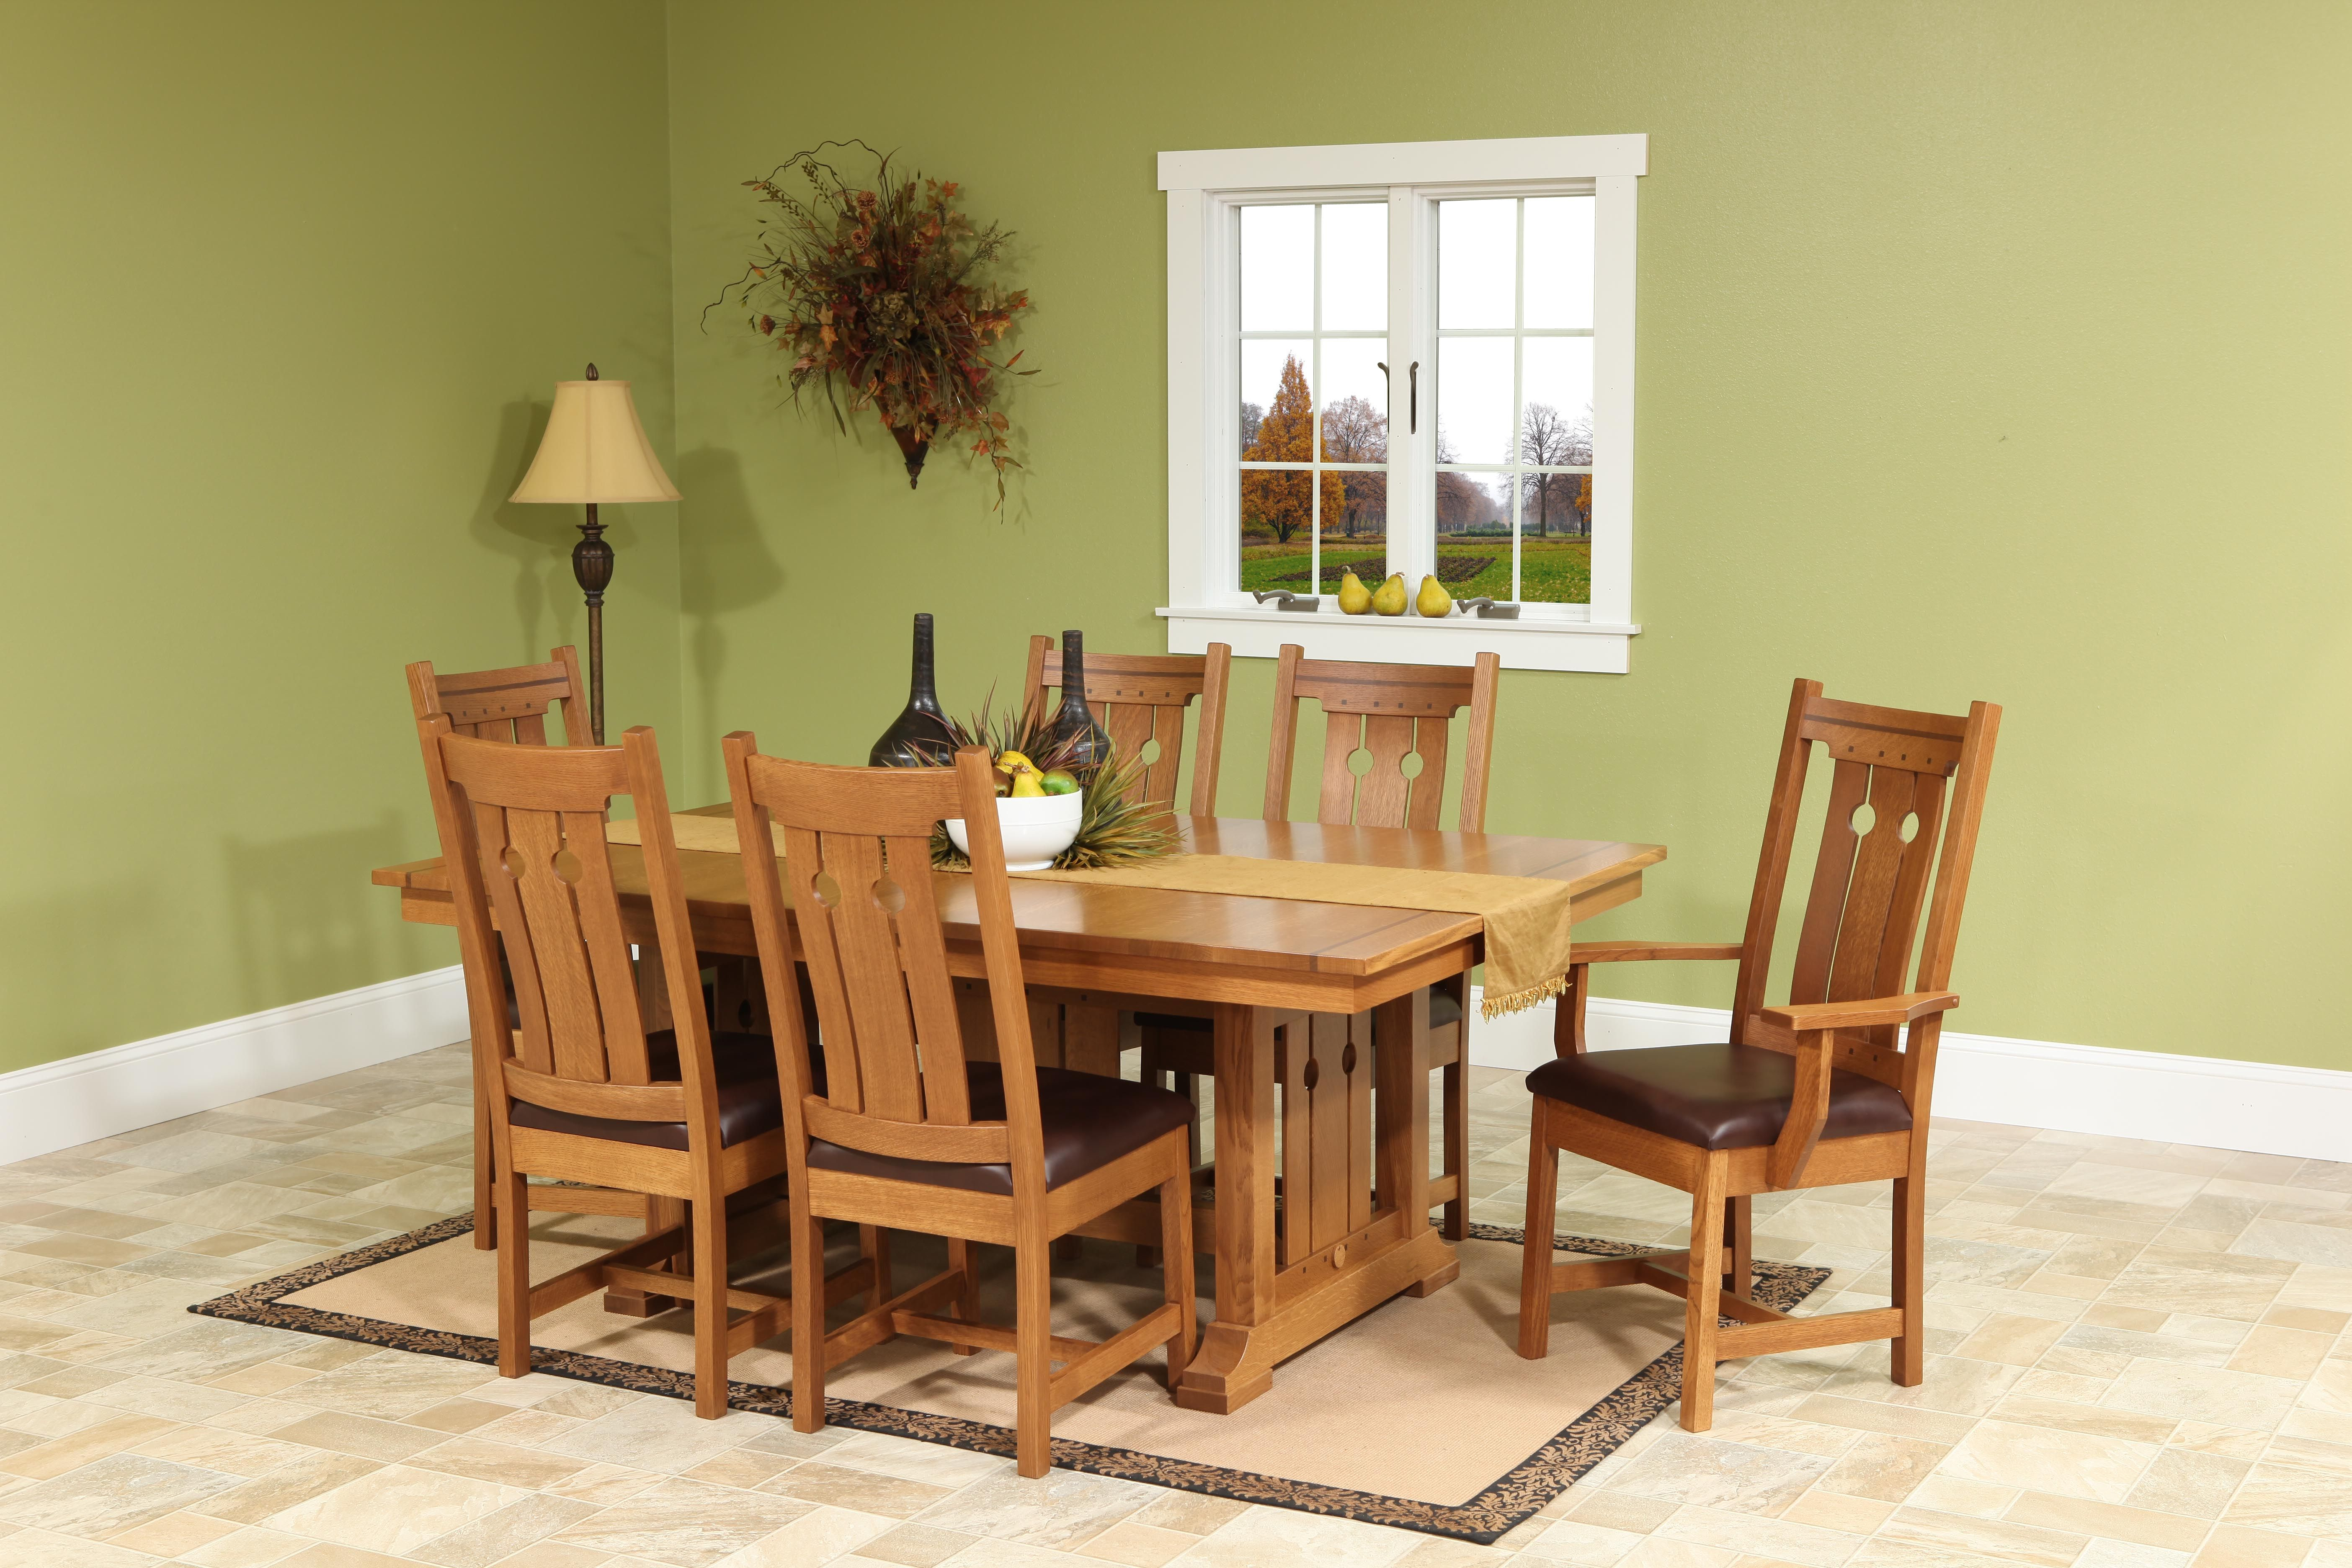 Durango Dining Table And Chairs